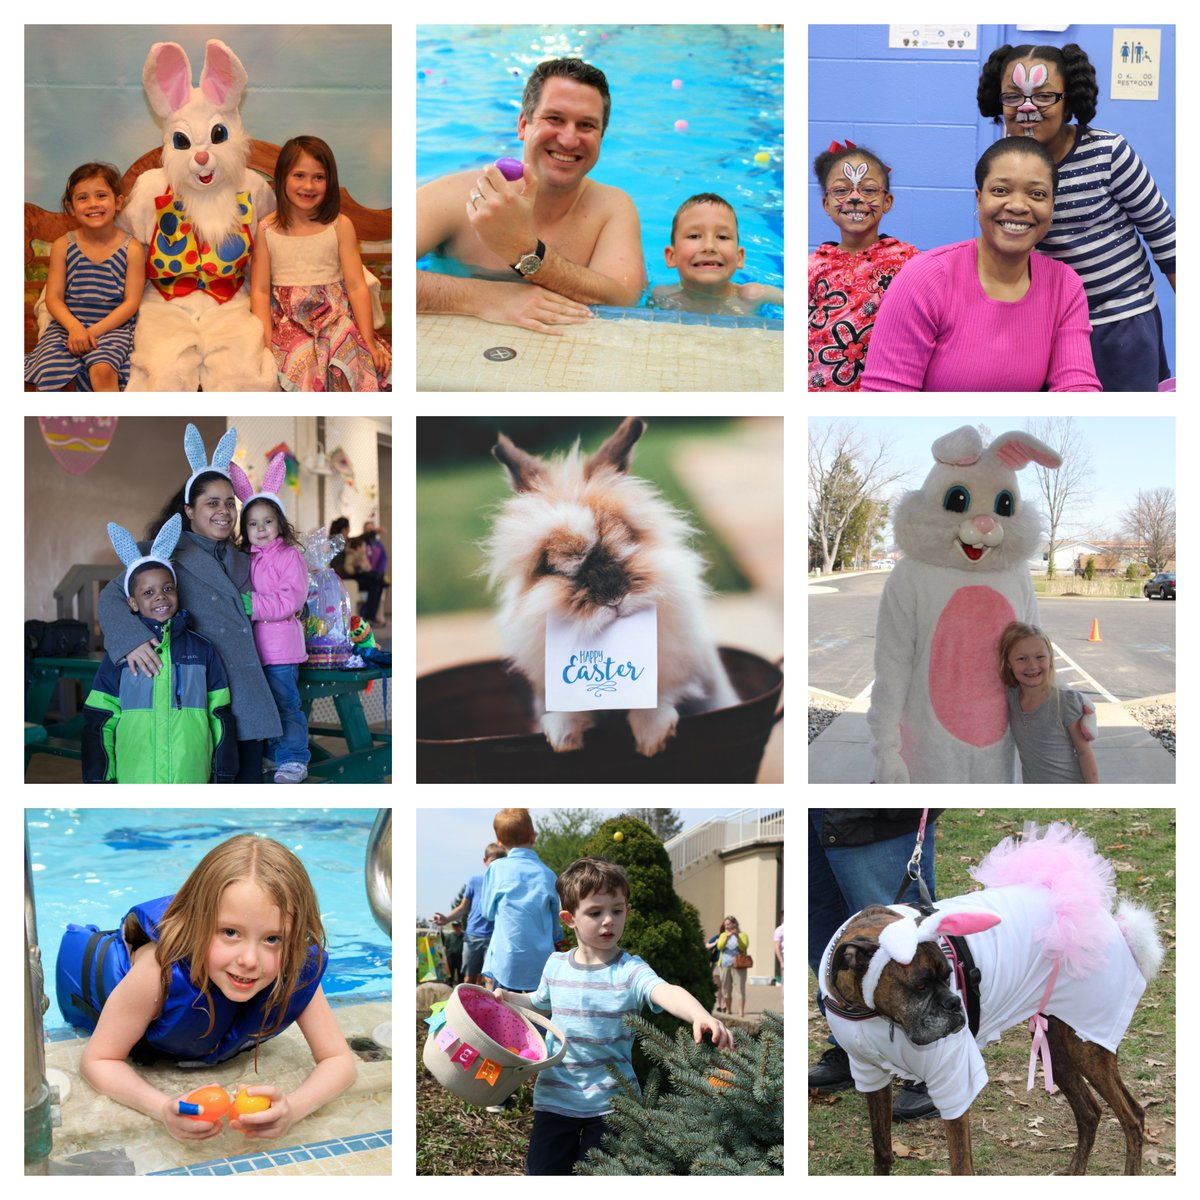 We 💙 capturing these #life moments.  What are your favorite #Easter traditions? <a href='https://t.co/Oy7Spa9fSp' class='extra' target='blank'><i class='material-icons mdl-color-text--grey-400'>image</i></a>